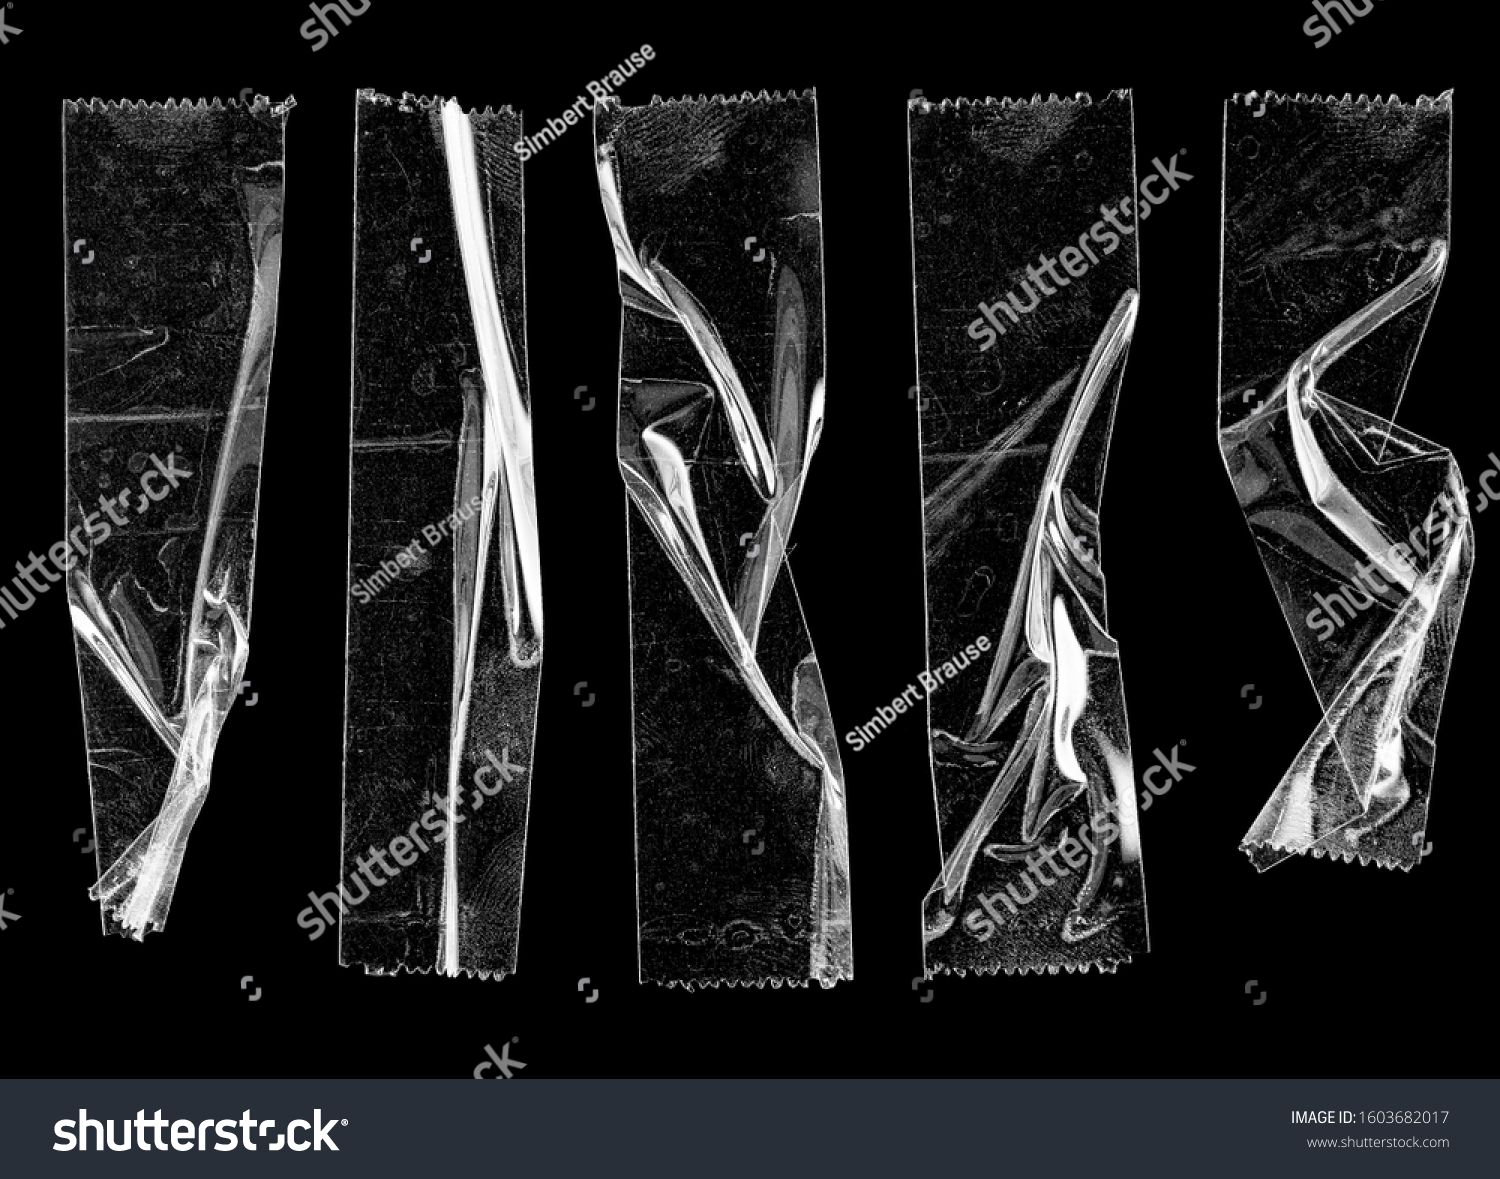 set of transparent adhesive tape or strips isolated on black background, crumpled plastic sticky snips, poster design overlays or elements.  #1603682017